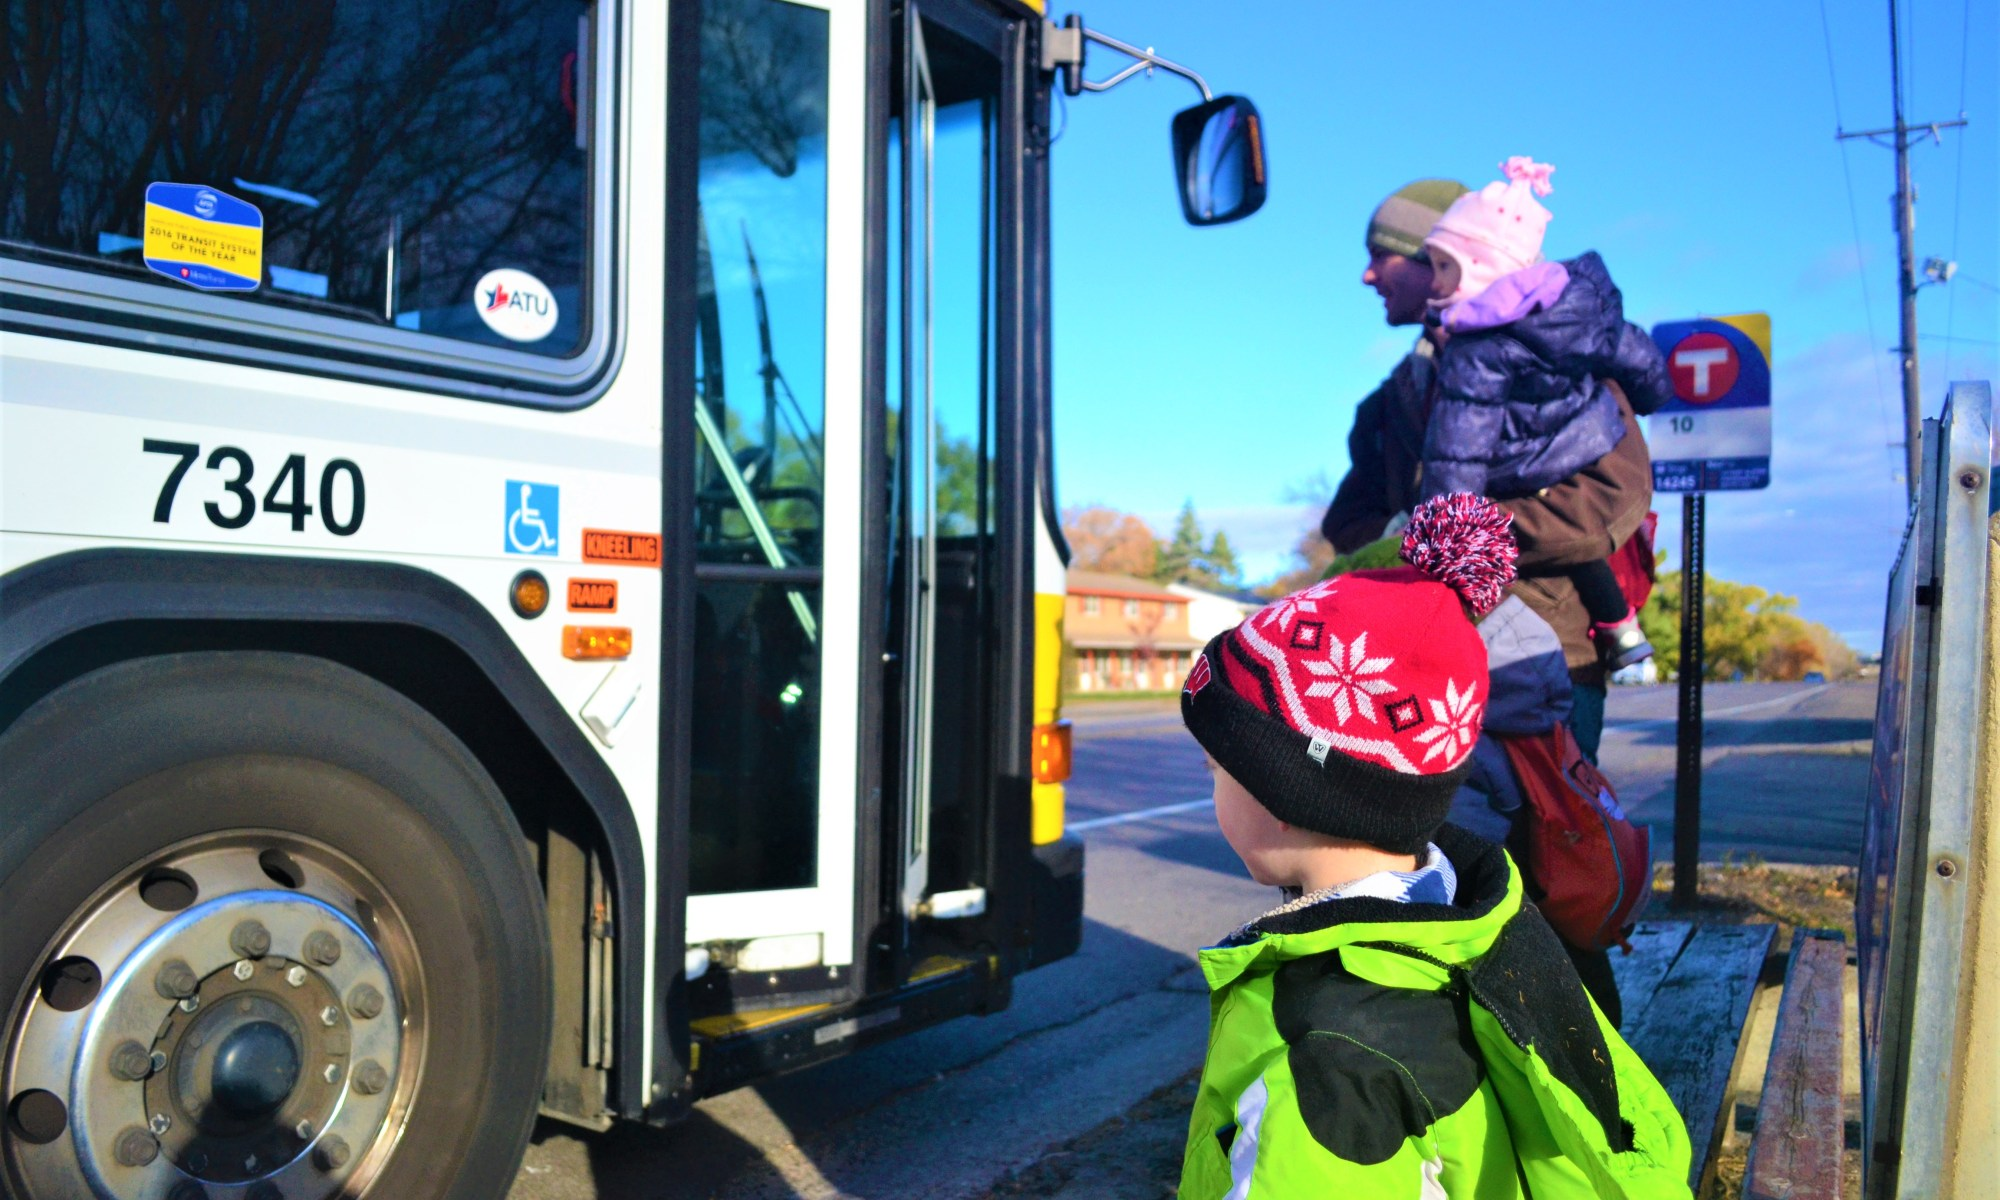 Dad Life: Taking your kids on the bus!